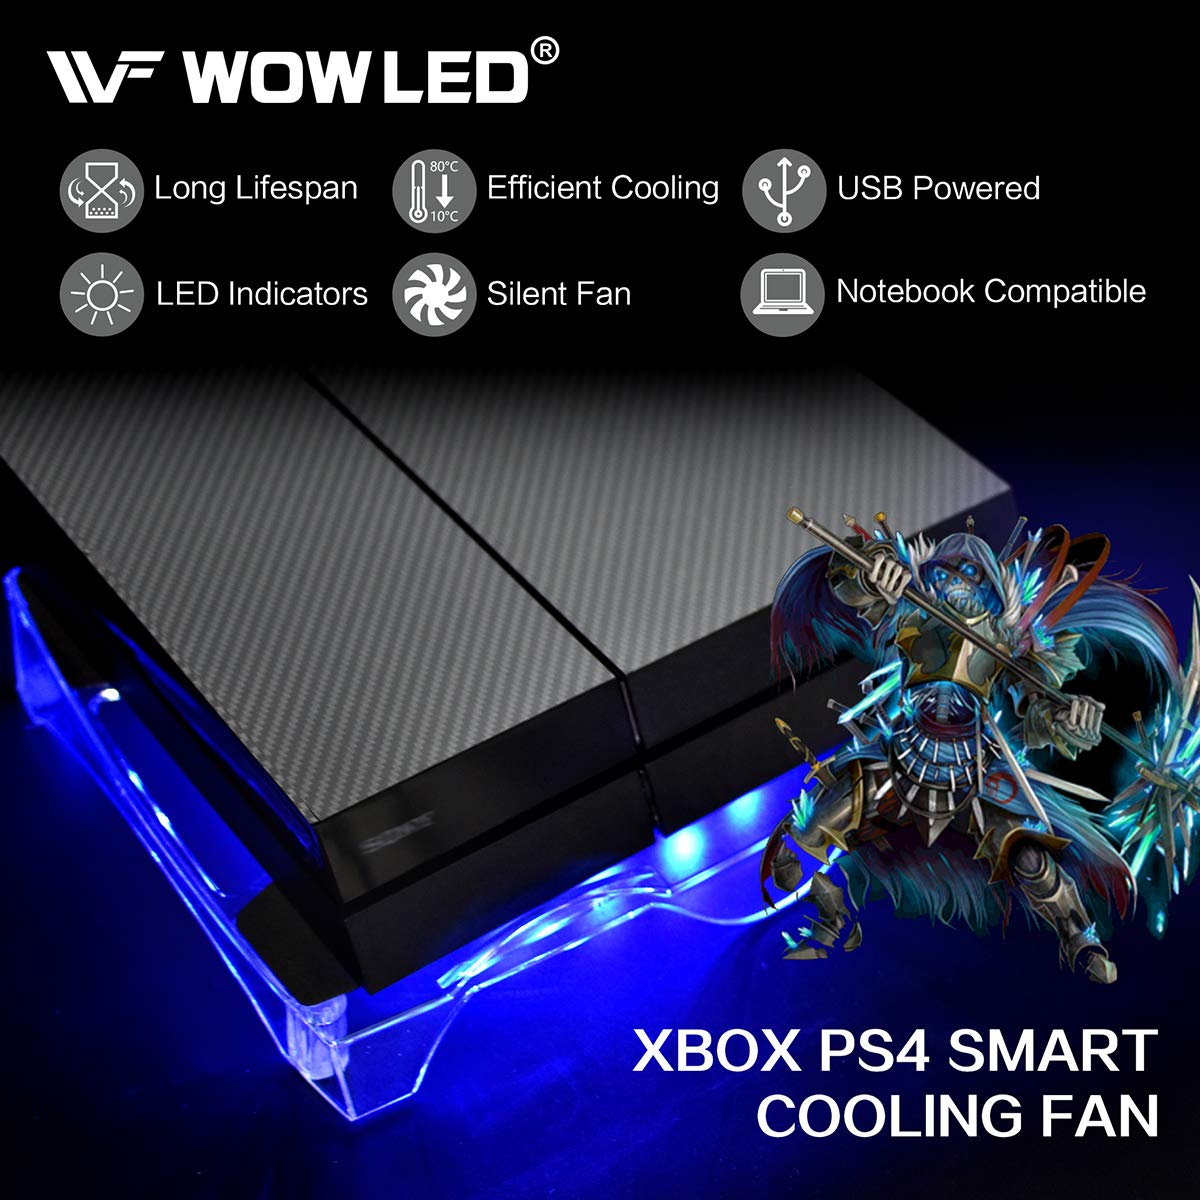 WOWLED Upgrade Sturdy LED Cooling Cooler Fan 3-Key Mini Controller PS4 Accessories Pro Cooling Fan, Xbox One X 360 Playstation 4 Sony Game Console PC, All-in-One USB RGB LED Fan Pad Stand Coolers by WOWLED (Image #4)